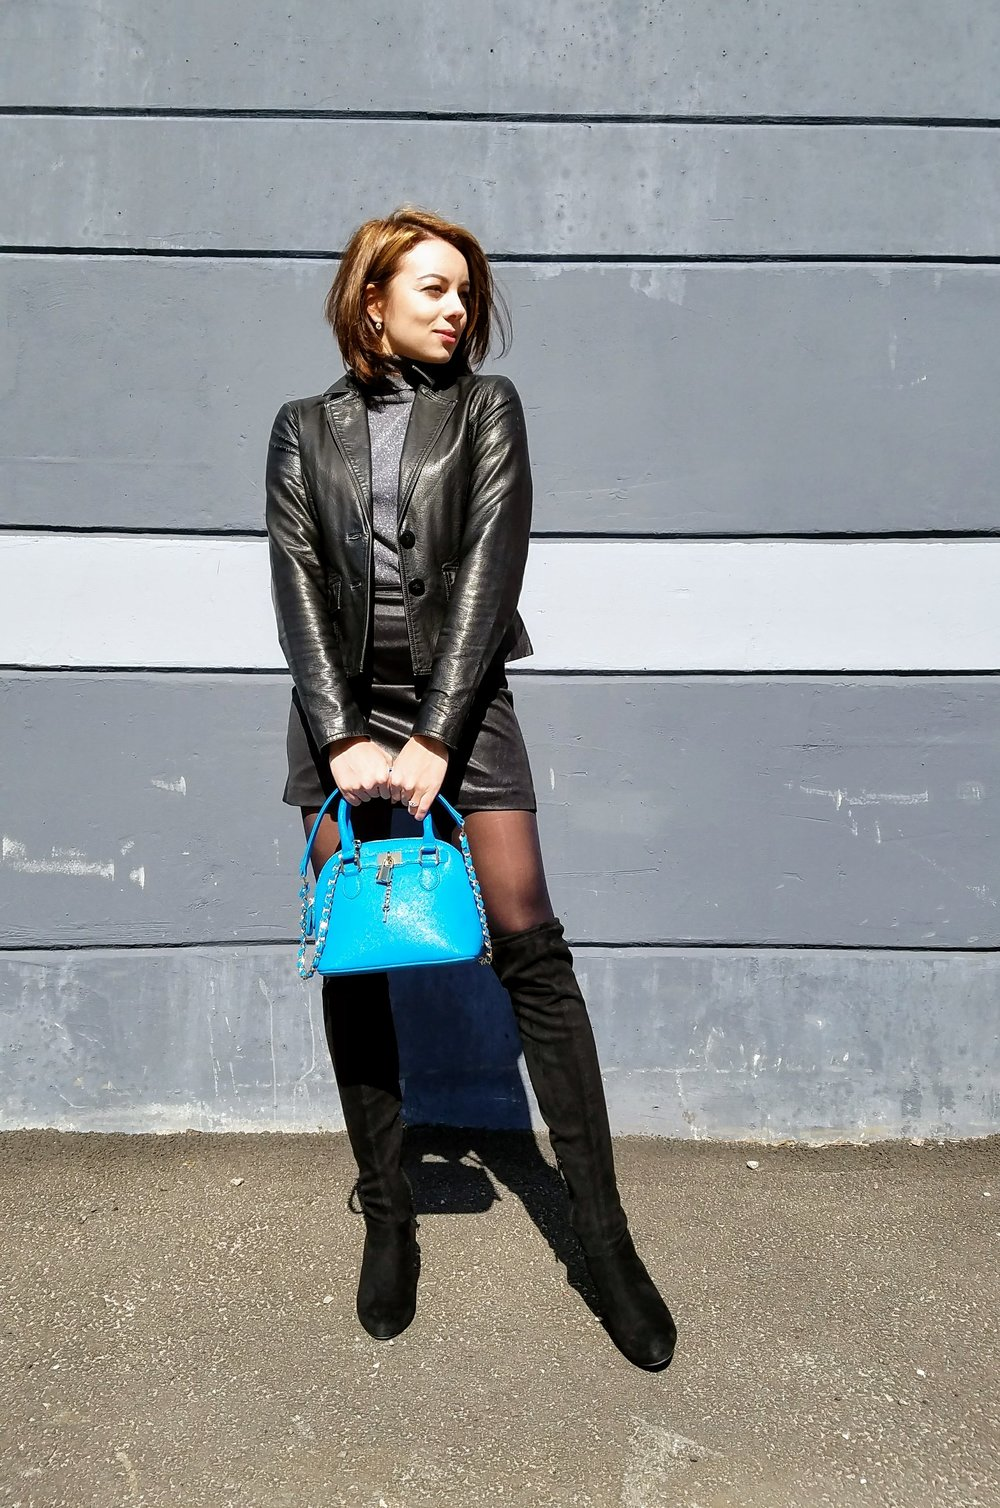 Black leather outfit, blue purse in front of gray wall.